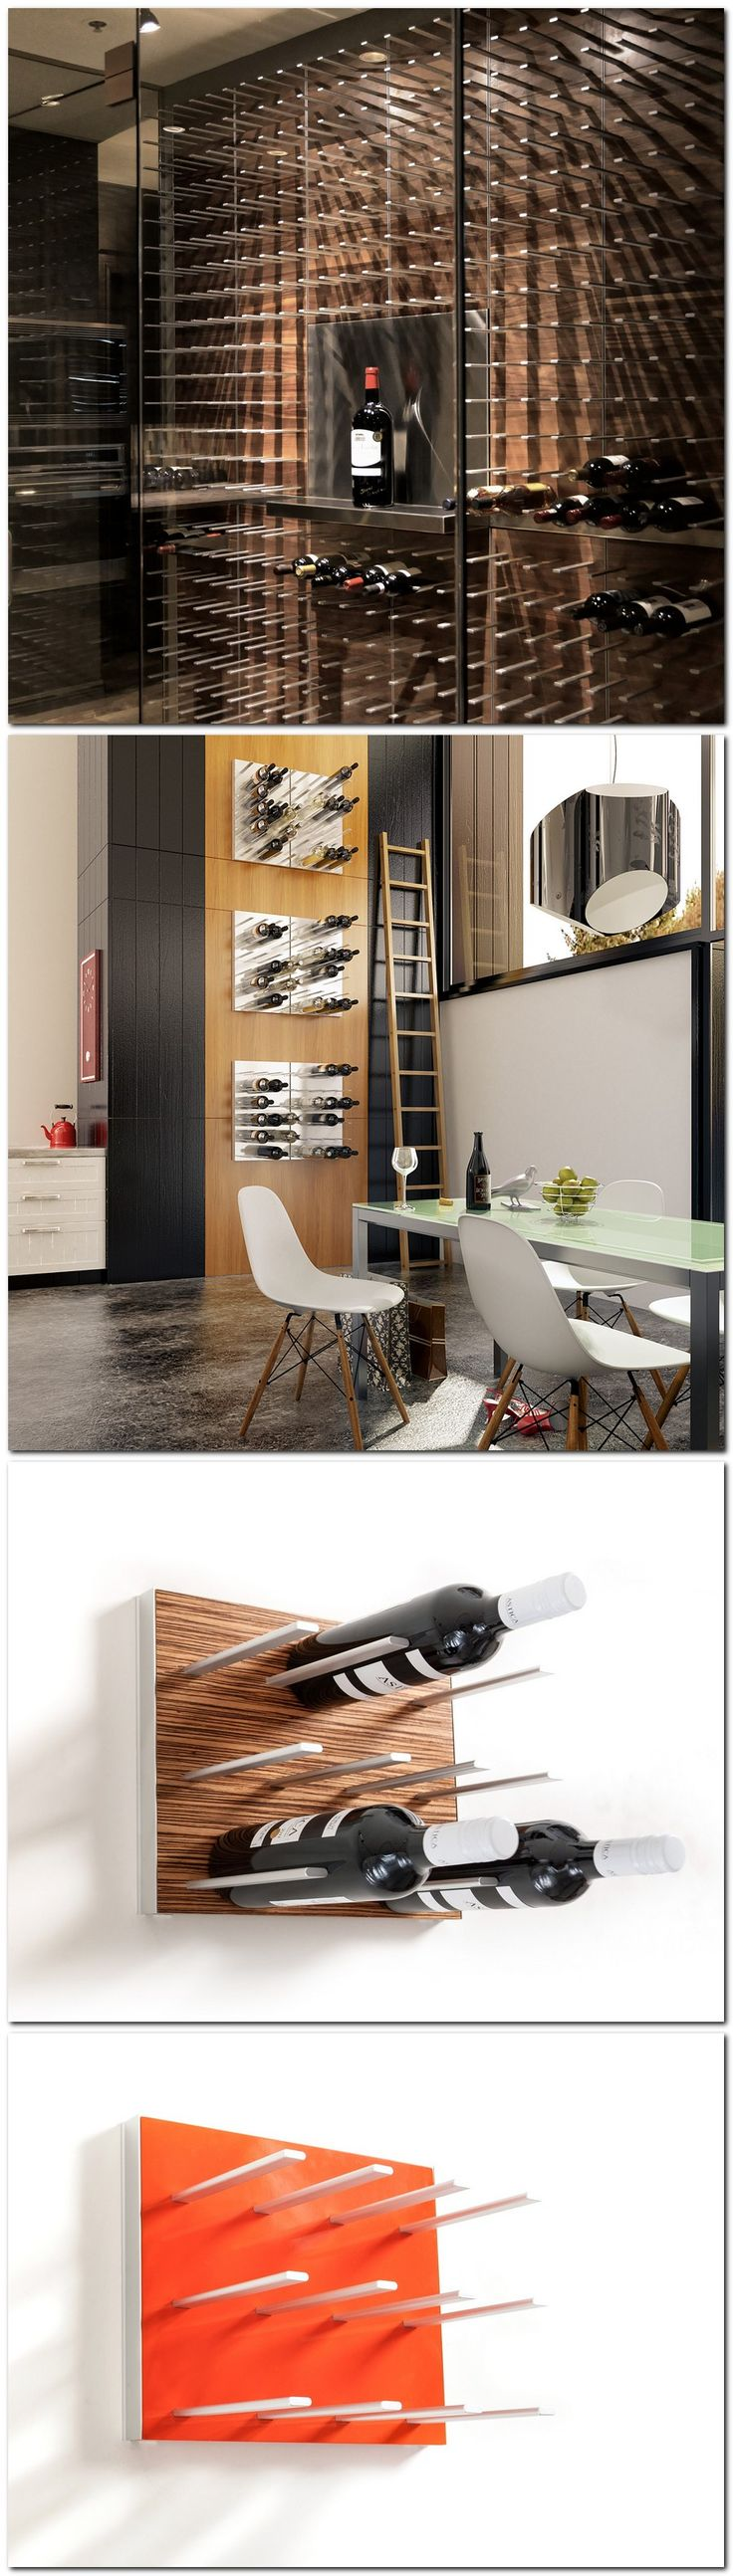 stact wine wall by eric pfeiffer stact isnu0027t a wine rack